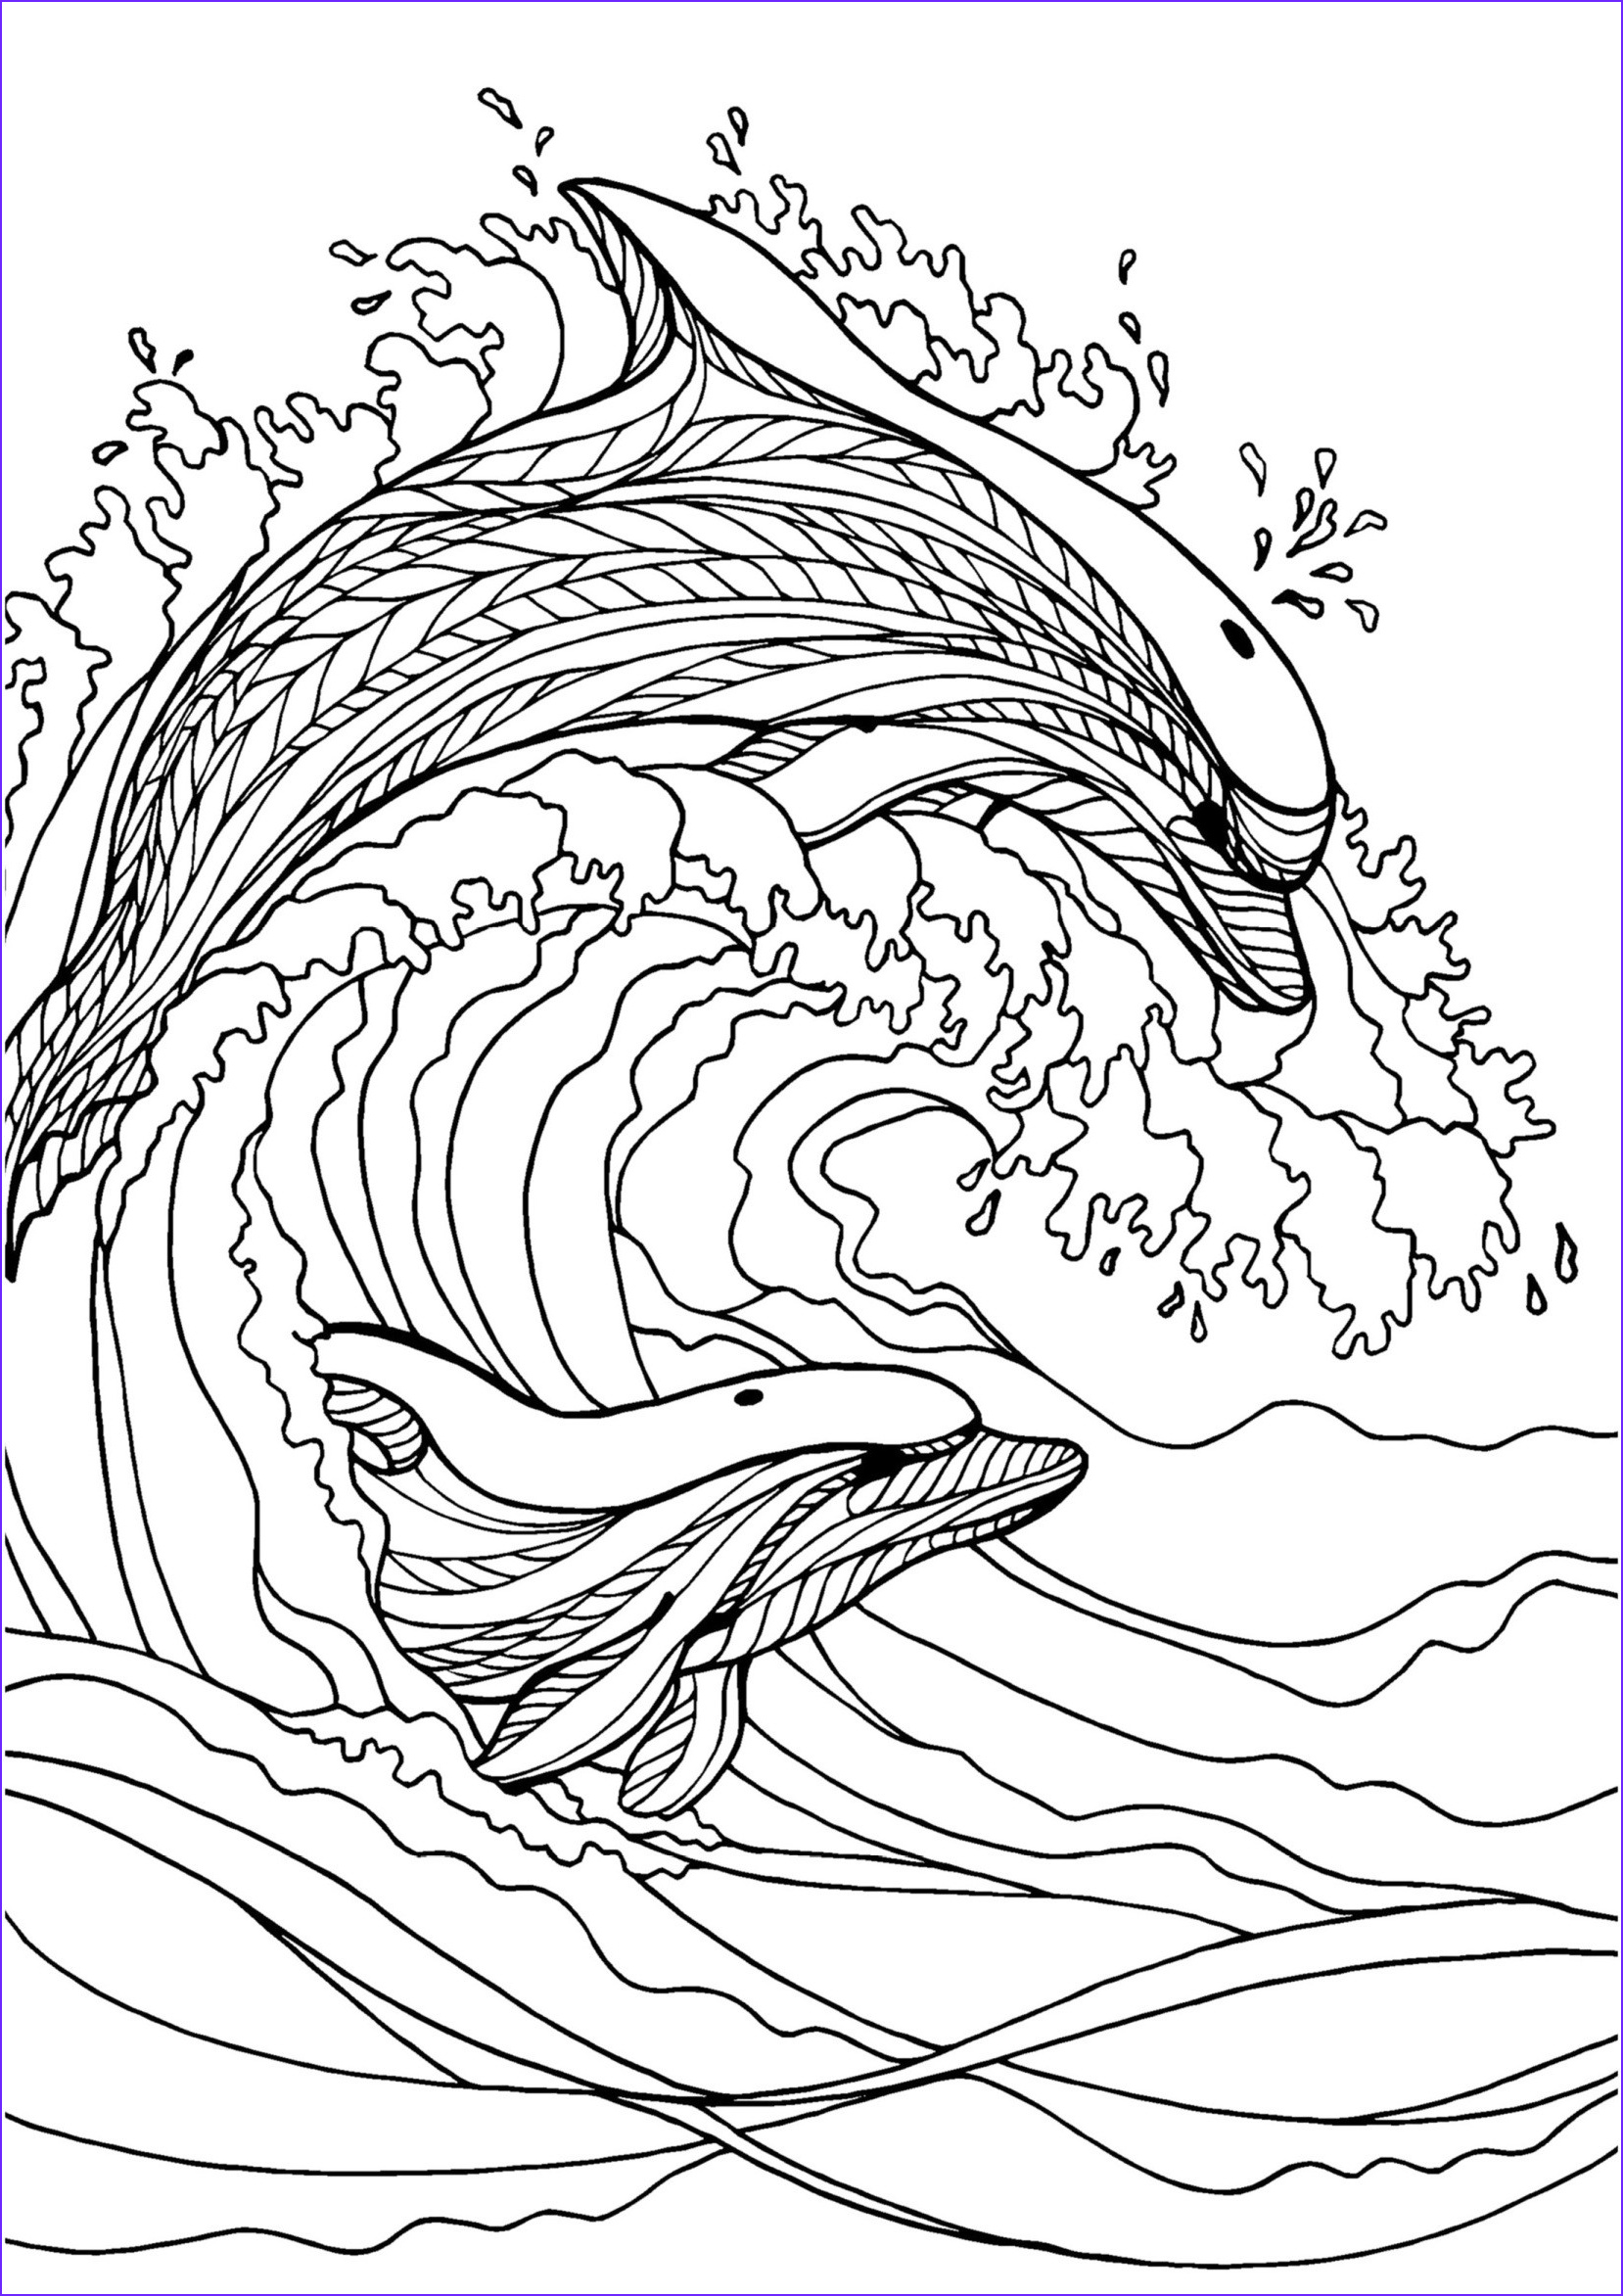 Dolphin Printable Coloring Page Best Of Photography Adult Coloring Pages Dolphin at Getdrawings